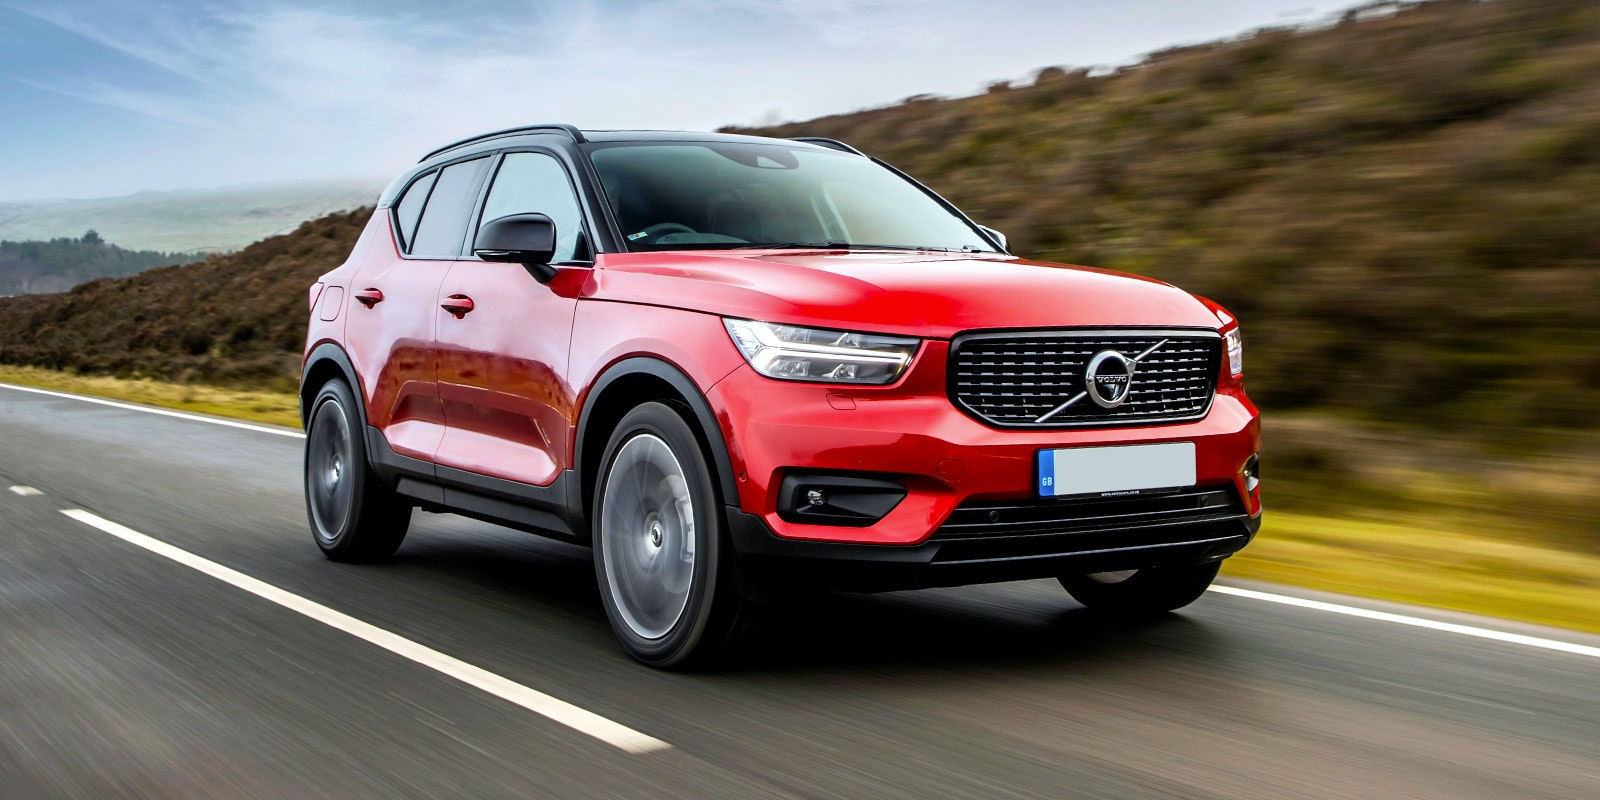 Volvo xc40 red front driving lead 1.jpg?ixlib=rb 1.1